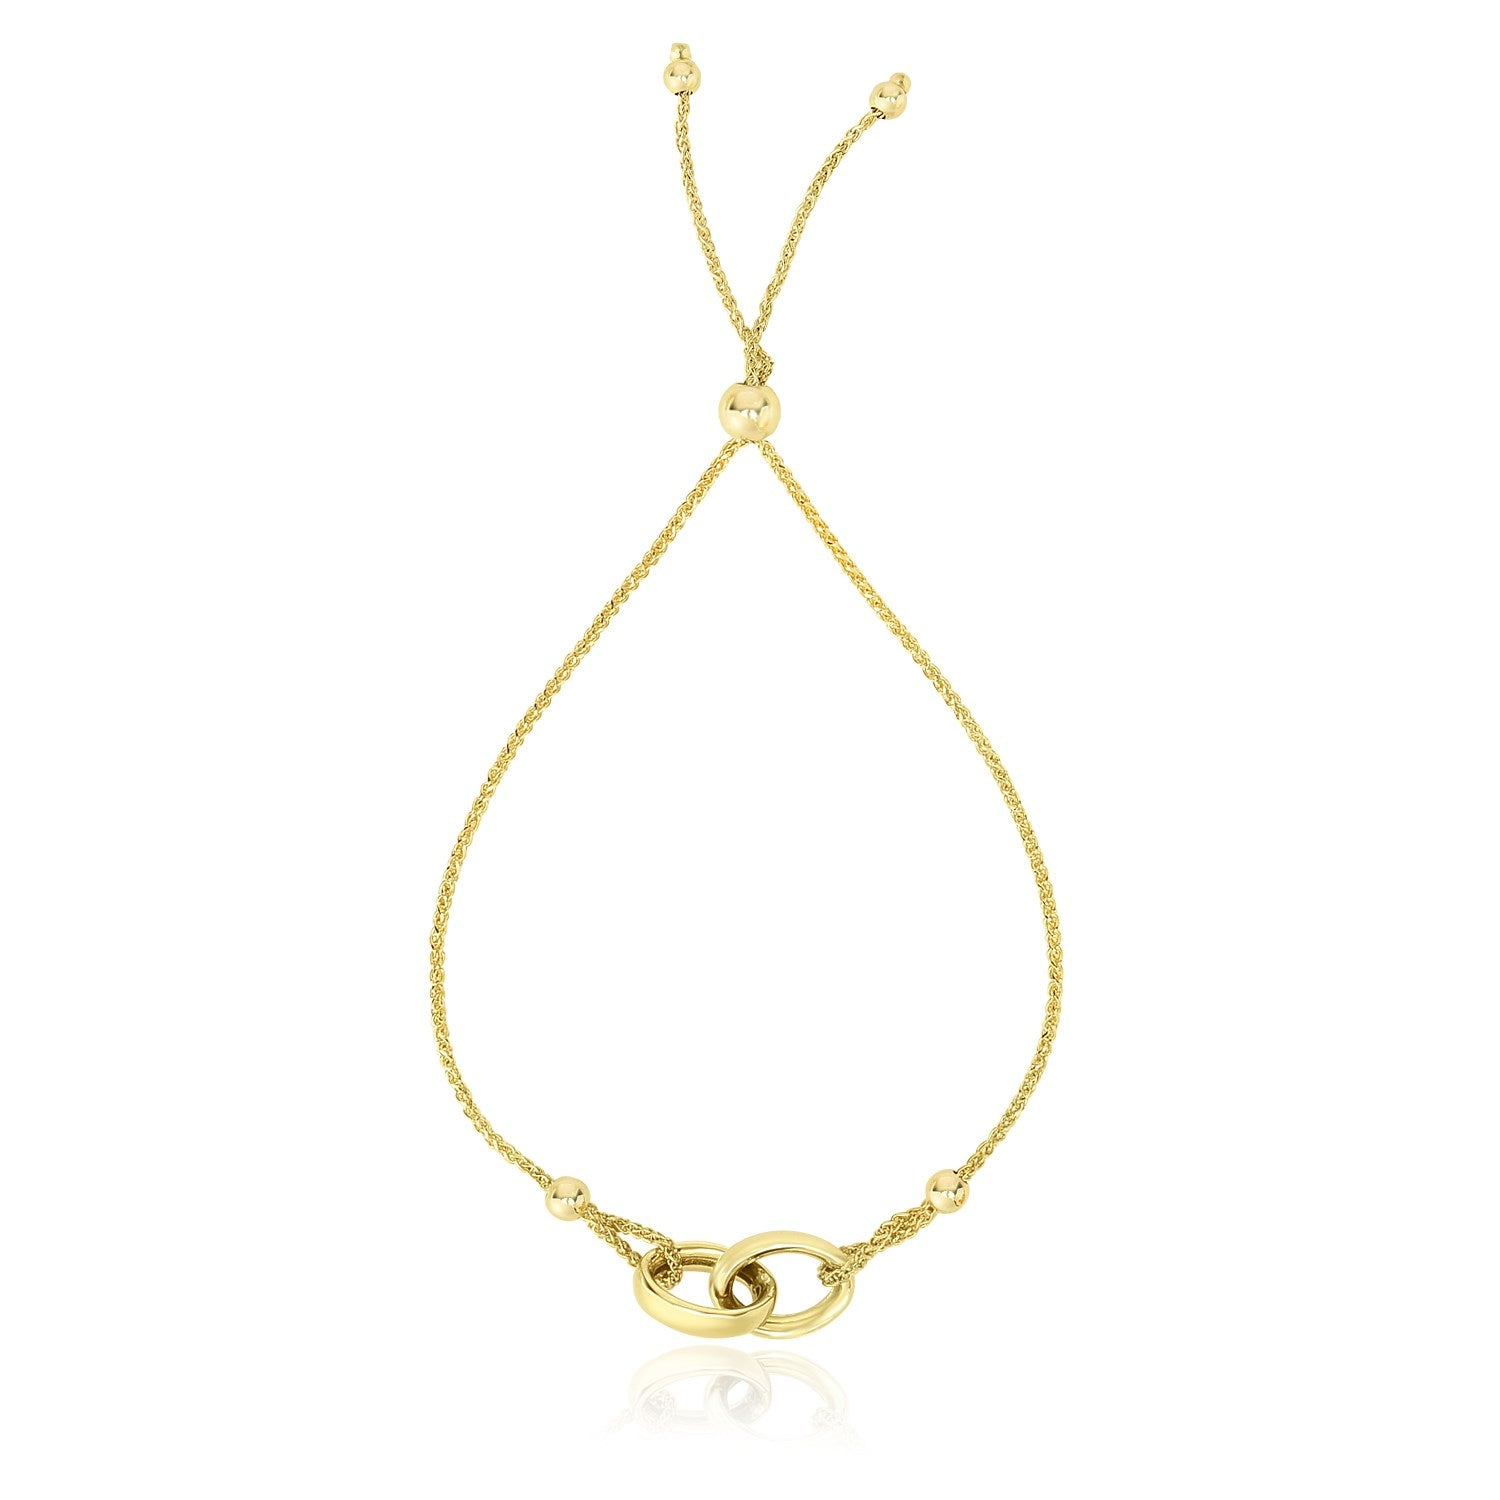 14k Yellow Gold Entwined Rings Adjustable Lariat Style Bracelet